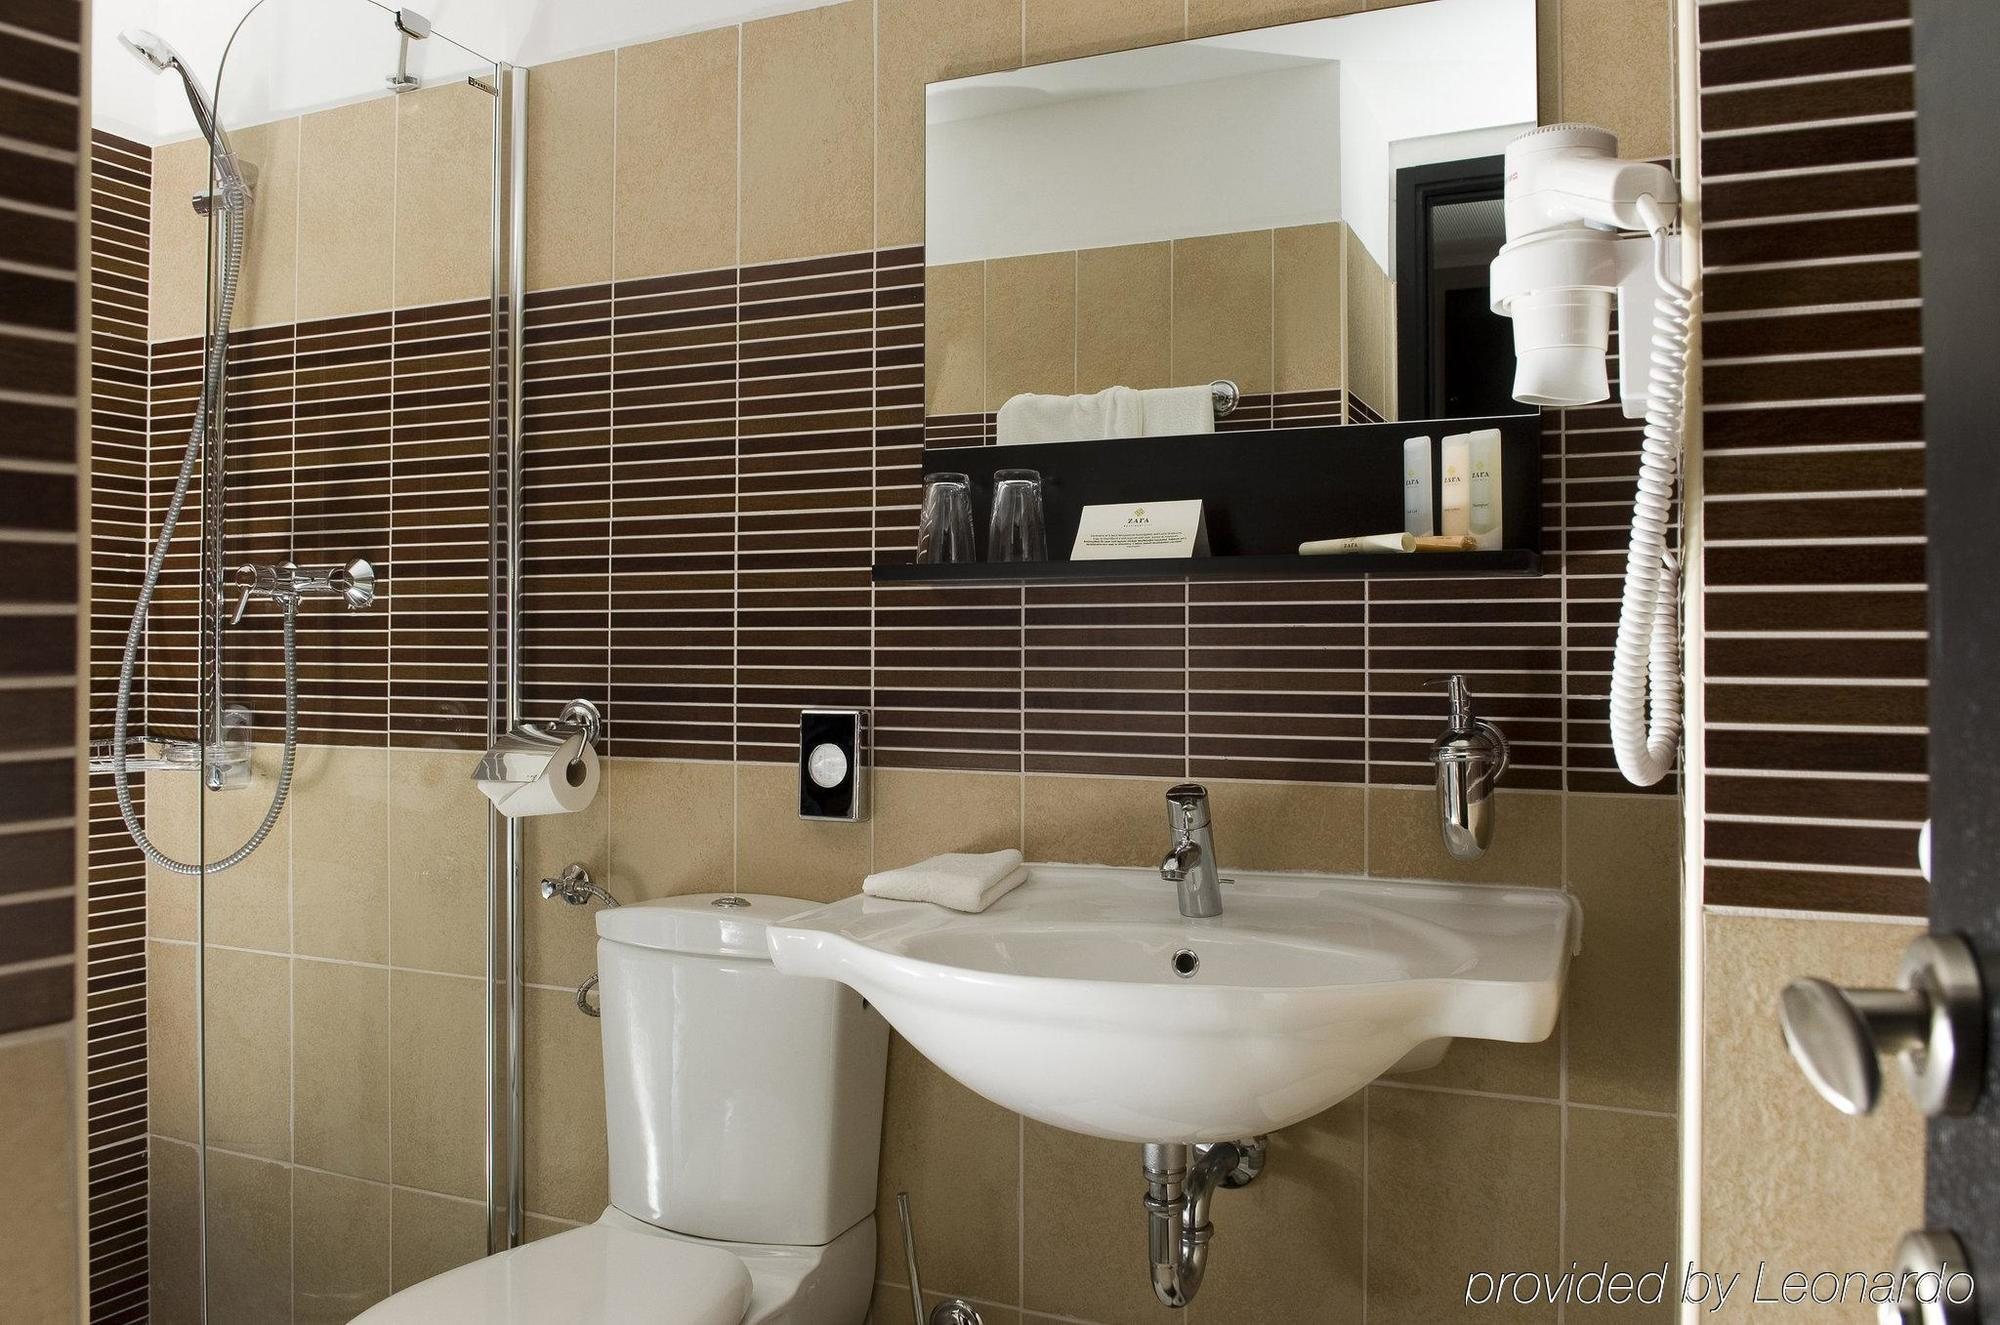 Hotel boutique budapest for Best boutique hotels budapest